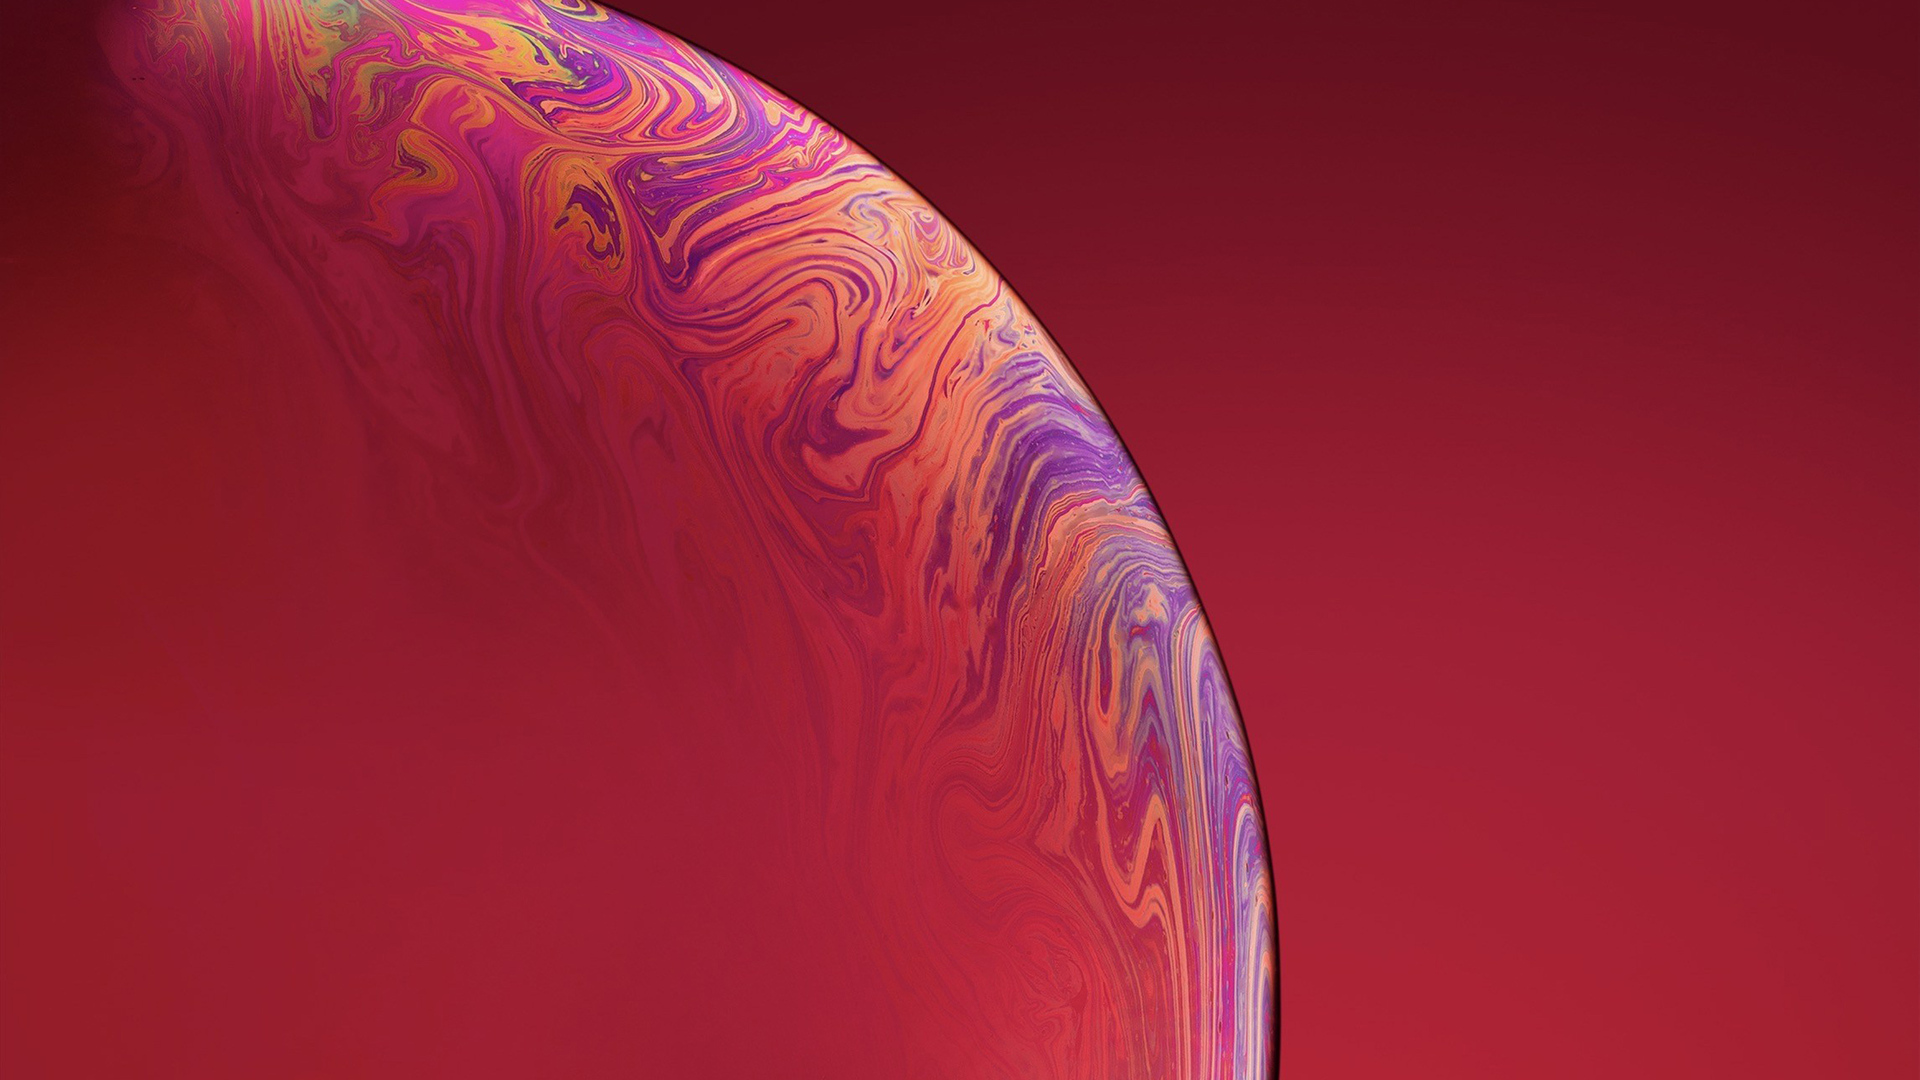 1920x1080 Iphone Xs Double Bubble Red Laptop Full Hd 1080p